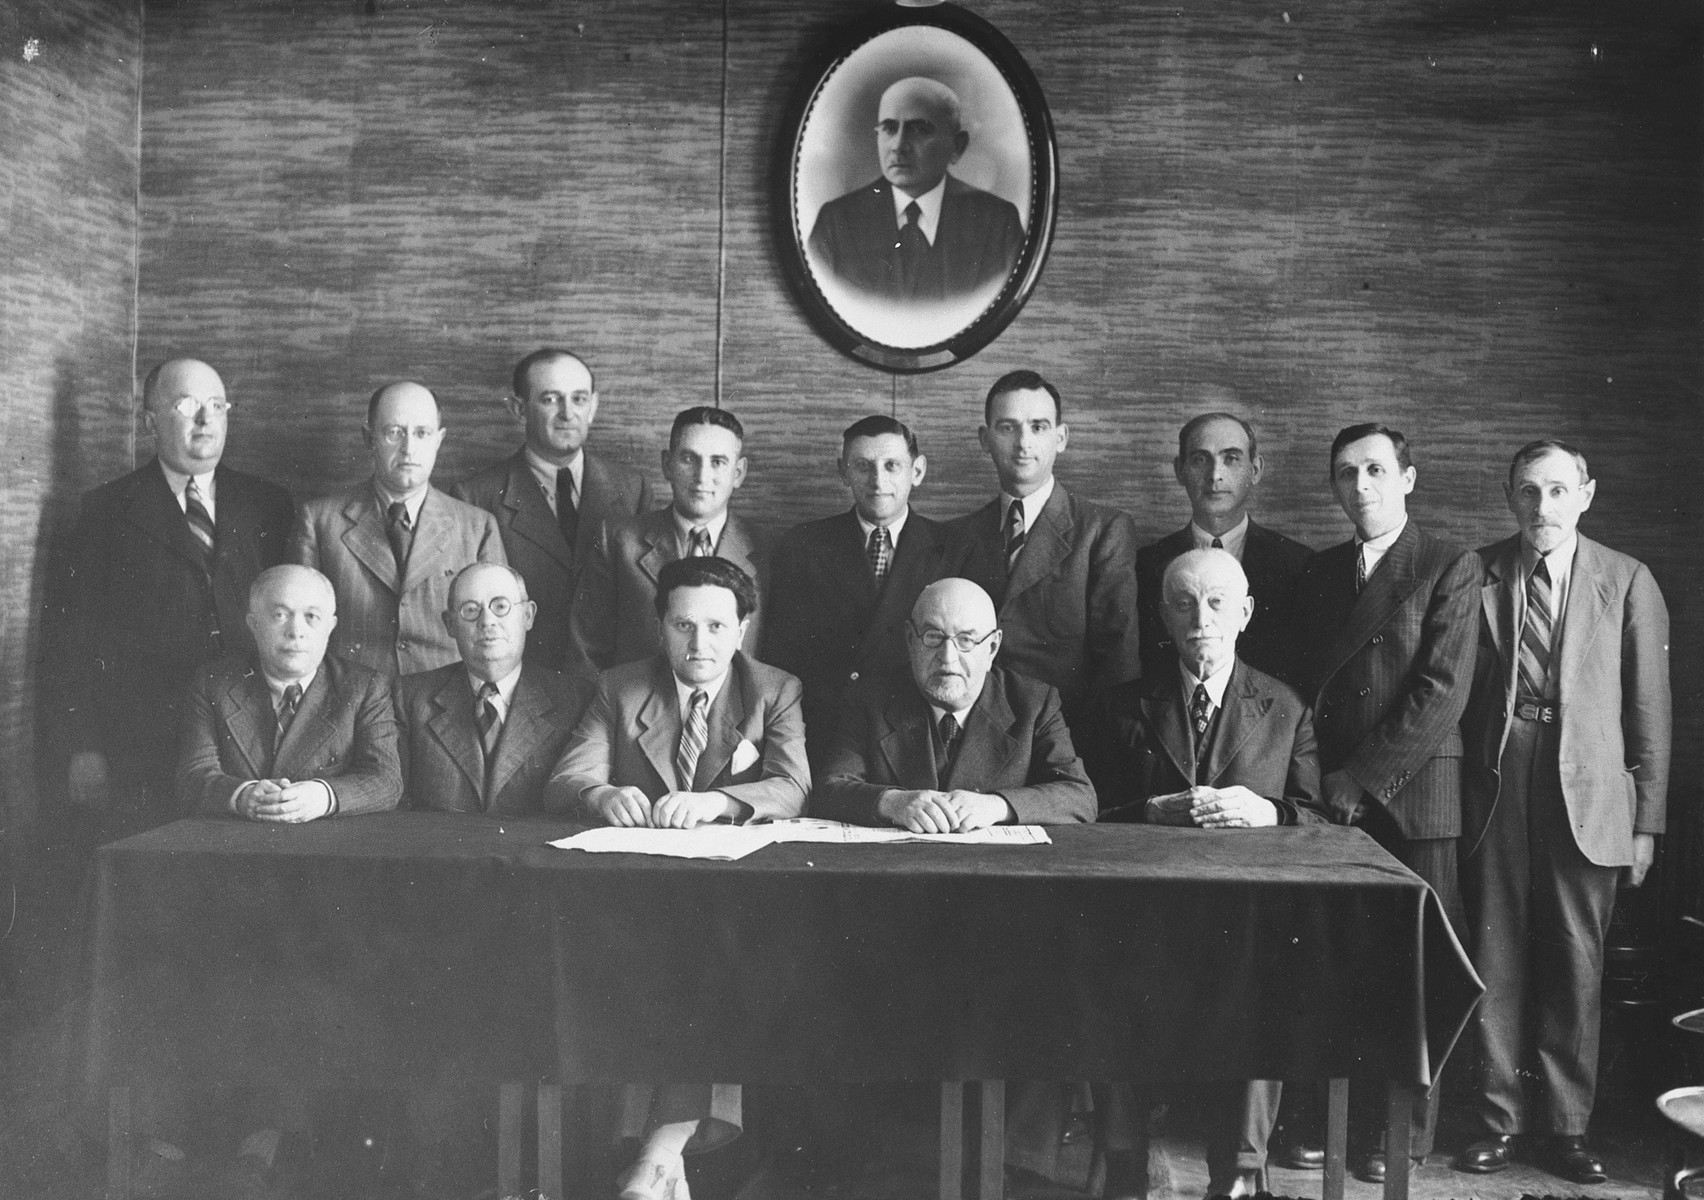 """Members of the board of directors of """"Achi Ezer"""", a welfare organization dedicated to helping refugees flocking to Lvov from the Ukraine.  Only two of those picutured survived the war.  Those pictured include front row: Israel Greenfeld (second from left), and Mr. Kaplan.  Back row: Joseph Silverman (third form left), Benzion Kwar (fourth from left), Charles Kfar (fifth from left; he was visiting from the United States) and Chazin (Meyer)."""